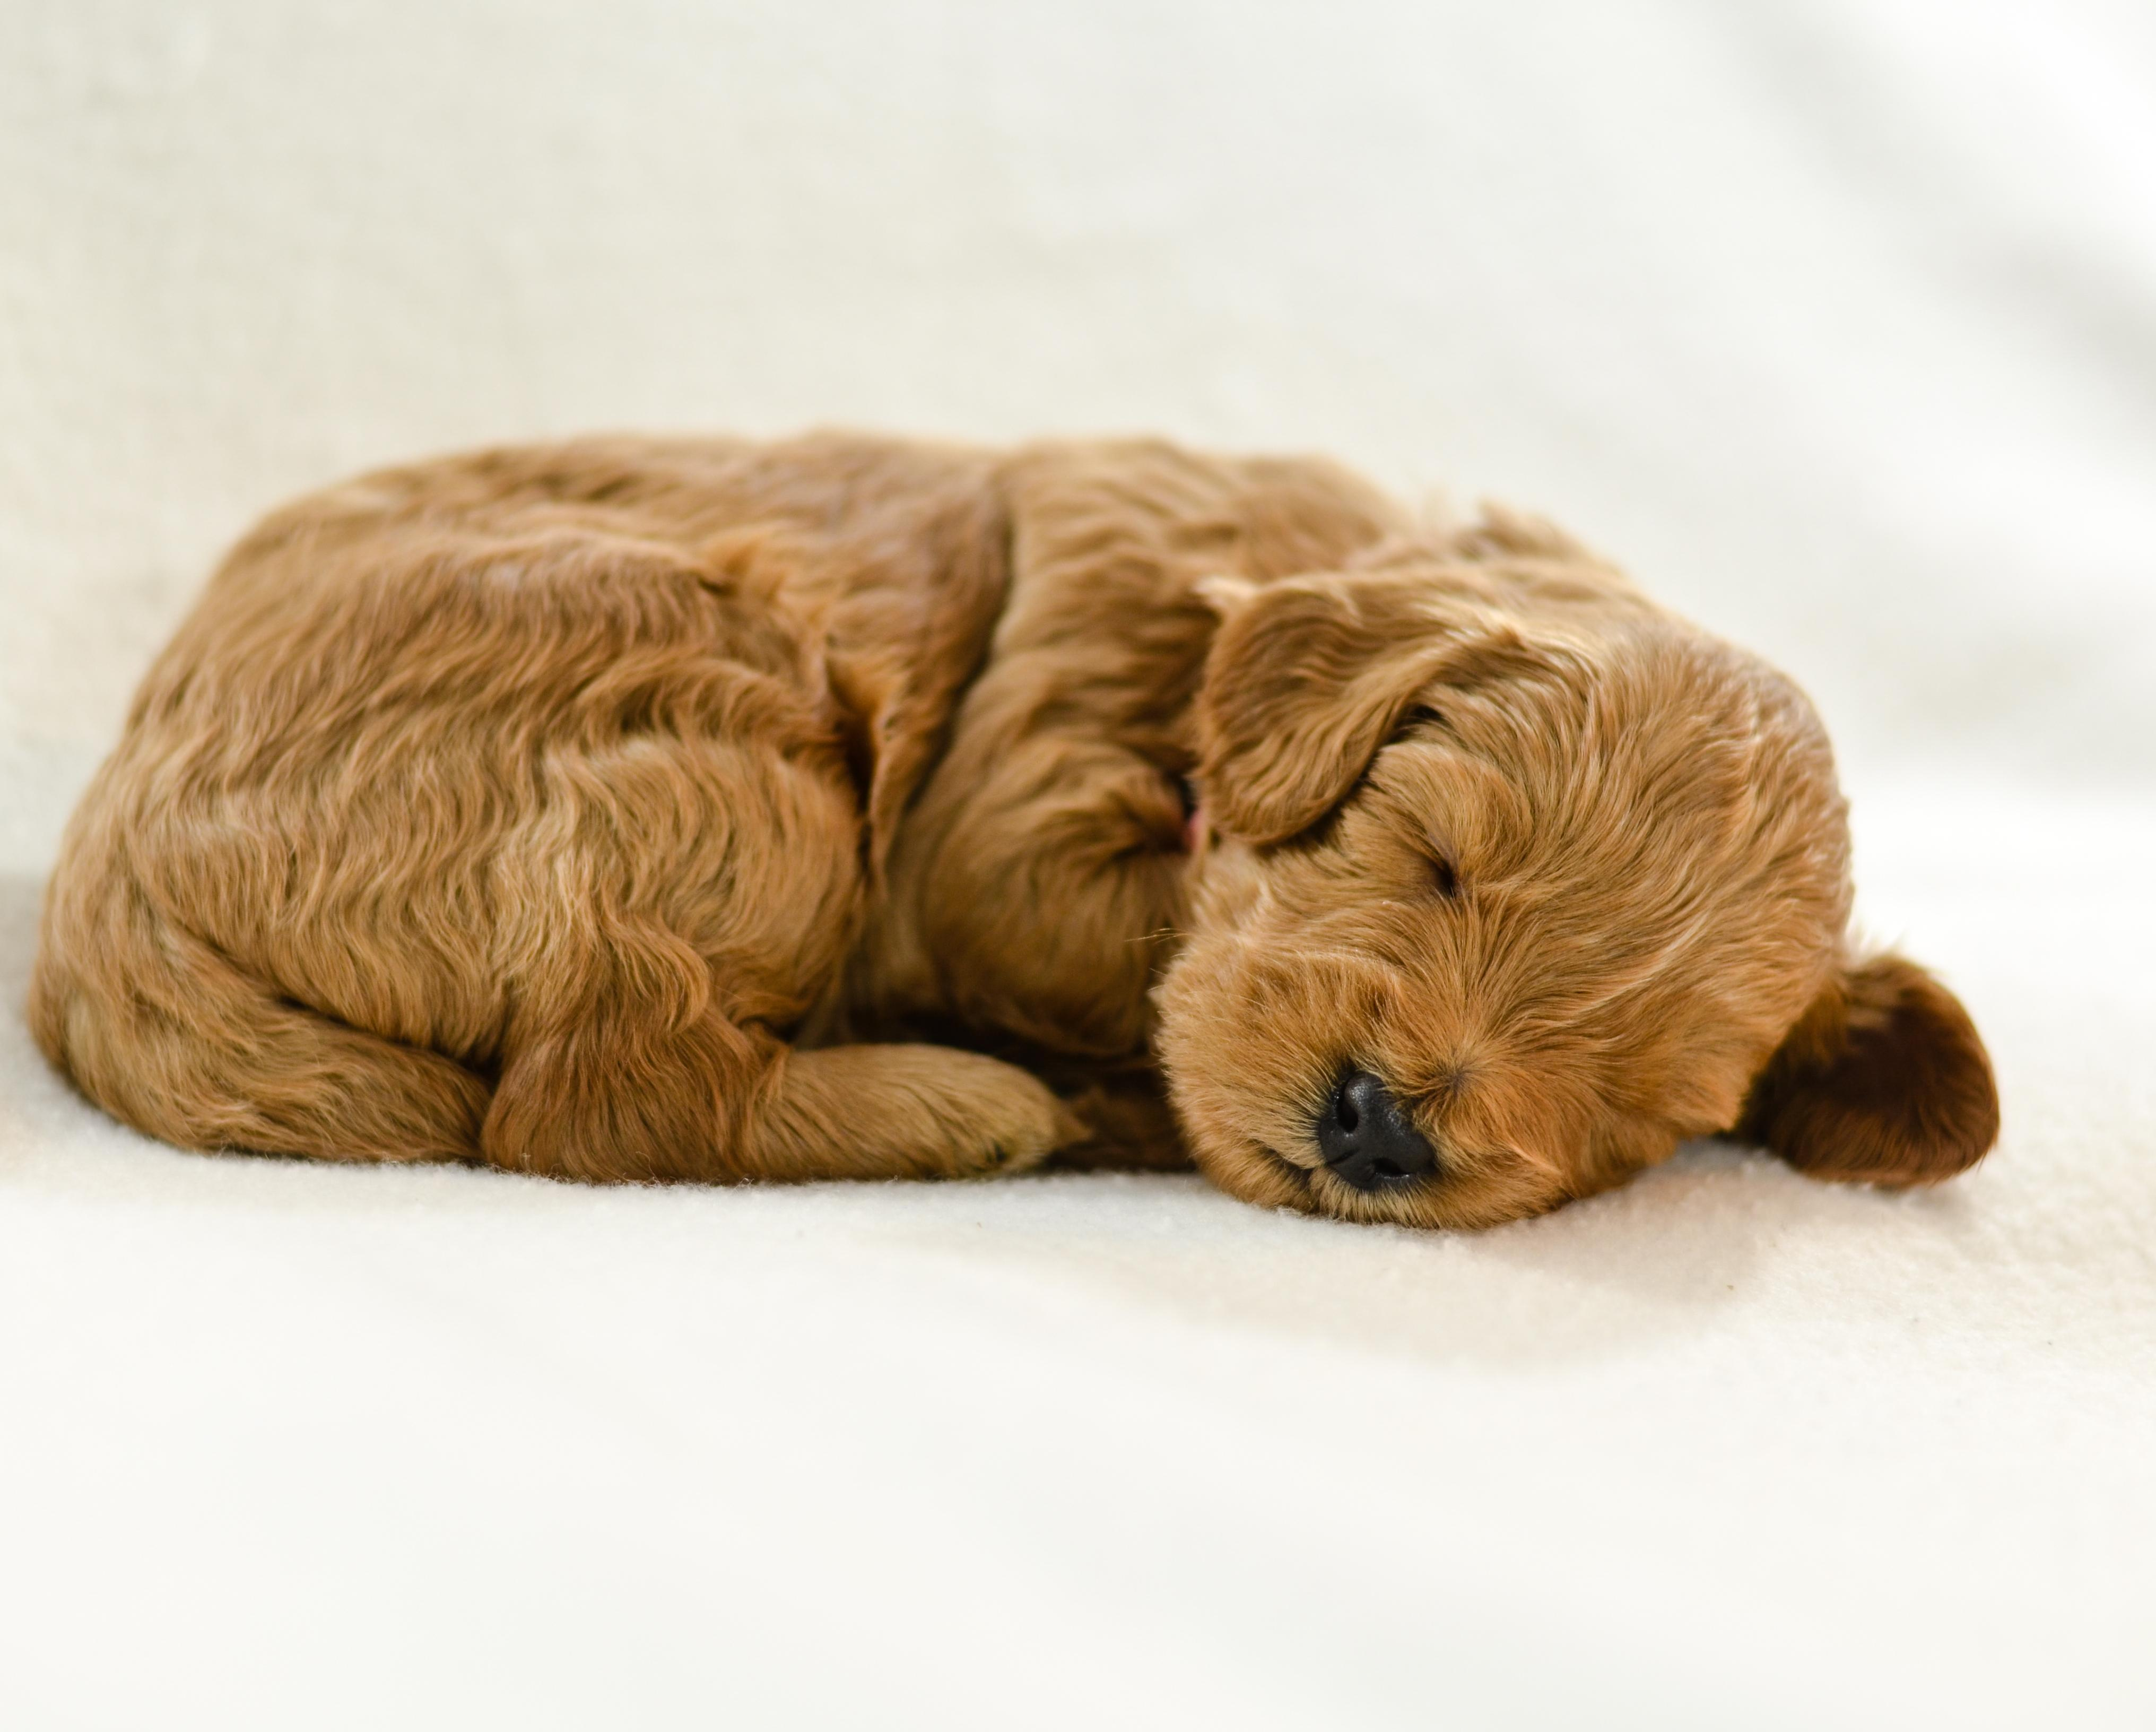 Blog archives timberidge goldendoodles at three weeks old these little ones have moved out of our bedroom and downstairs to the puppy pen where they will spend the remainder of their time with nvjuhfo Images